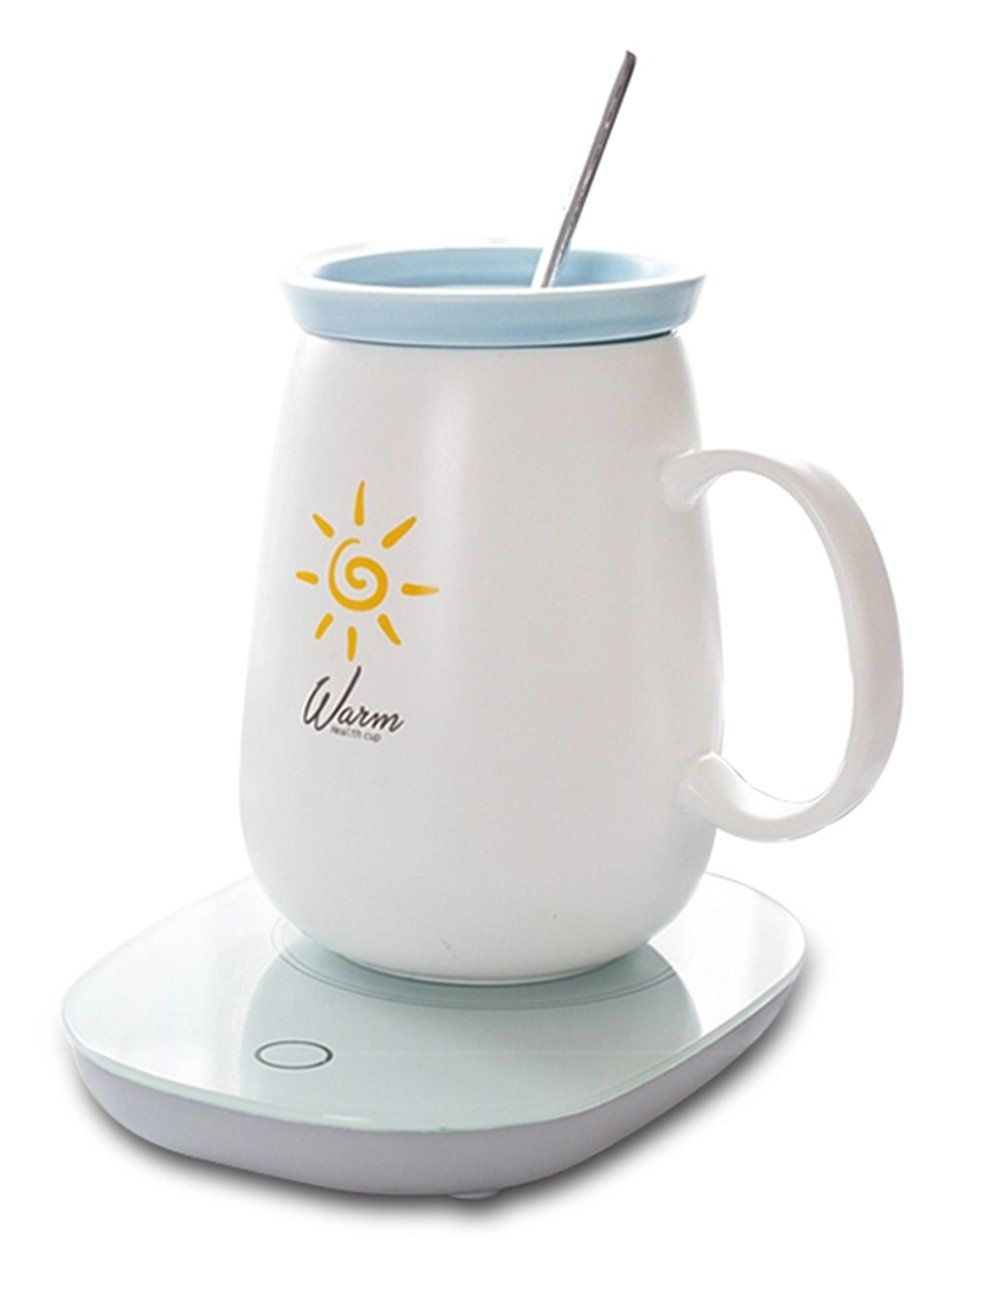 Auto Shut On / Off Coffee Beverage Mug Warmer - BZY1 Electric Constant Temperature 55℃/131℉ Waterproof Cup Heater (Include Coffee Mug & Spoon)